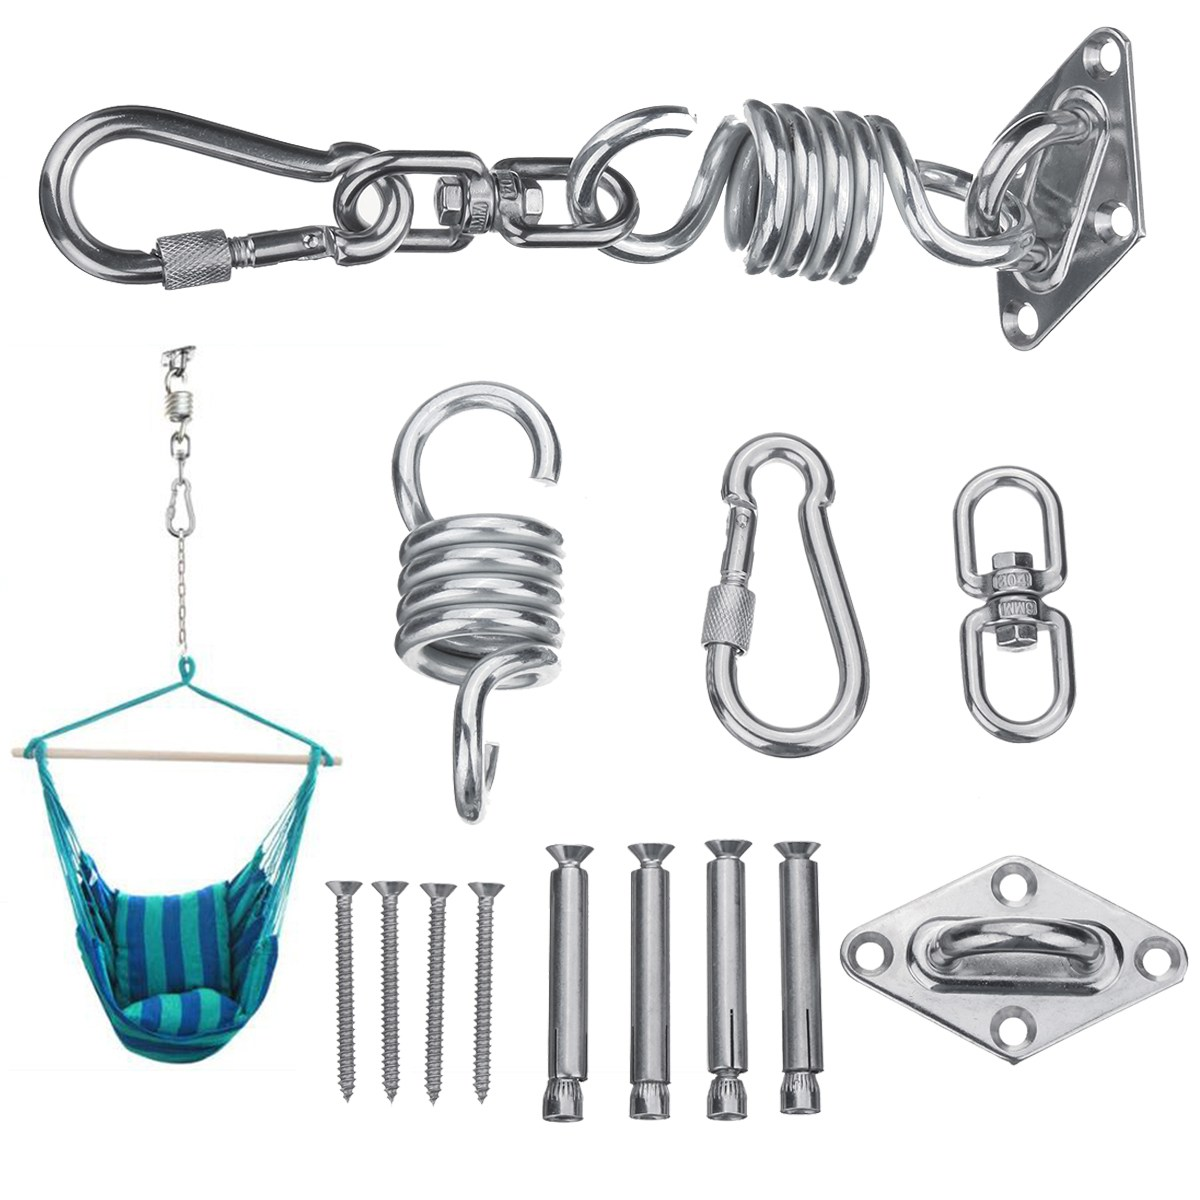 Fitness & Body Building Humorous Hanging Hammock Chair Hardware Ceiling Mount Spring Swing Hook Kit For Garden Swing Kit Accessories